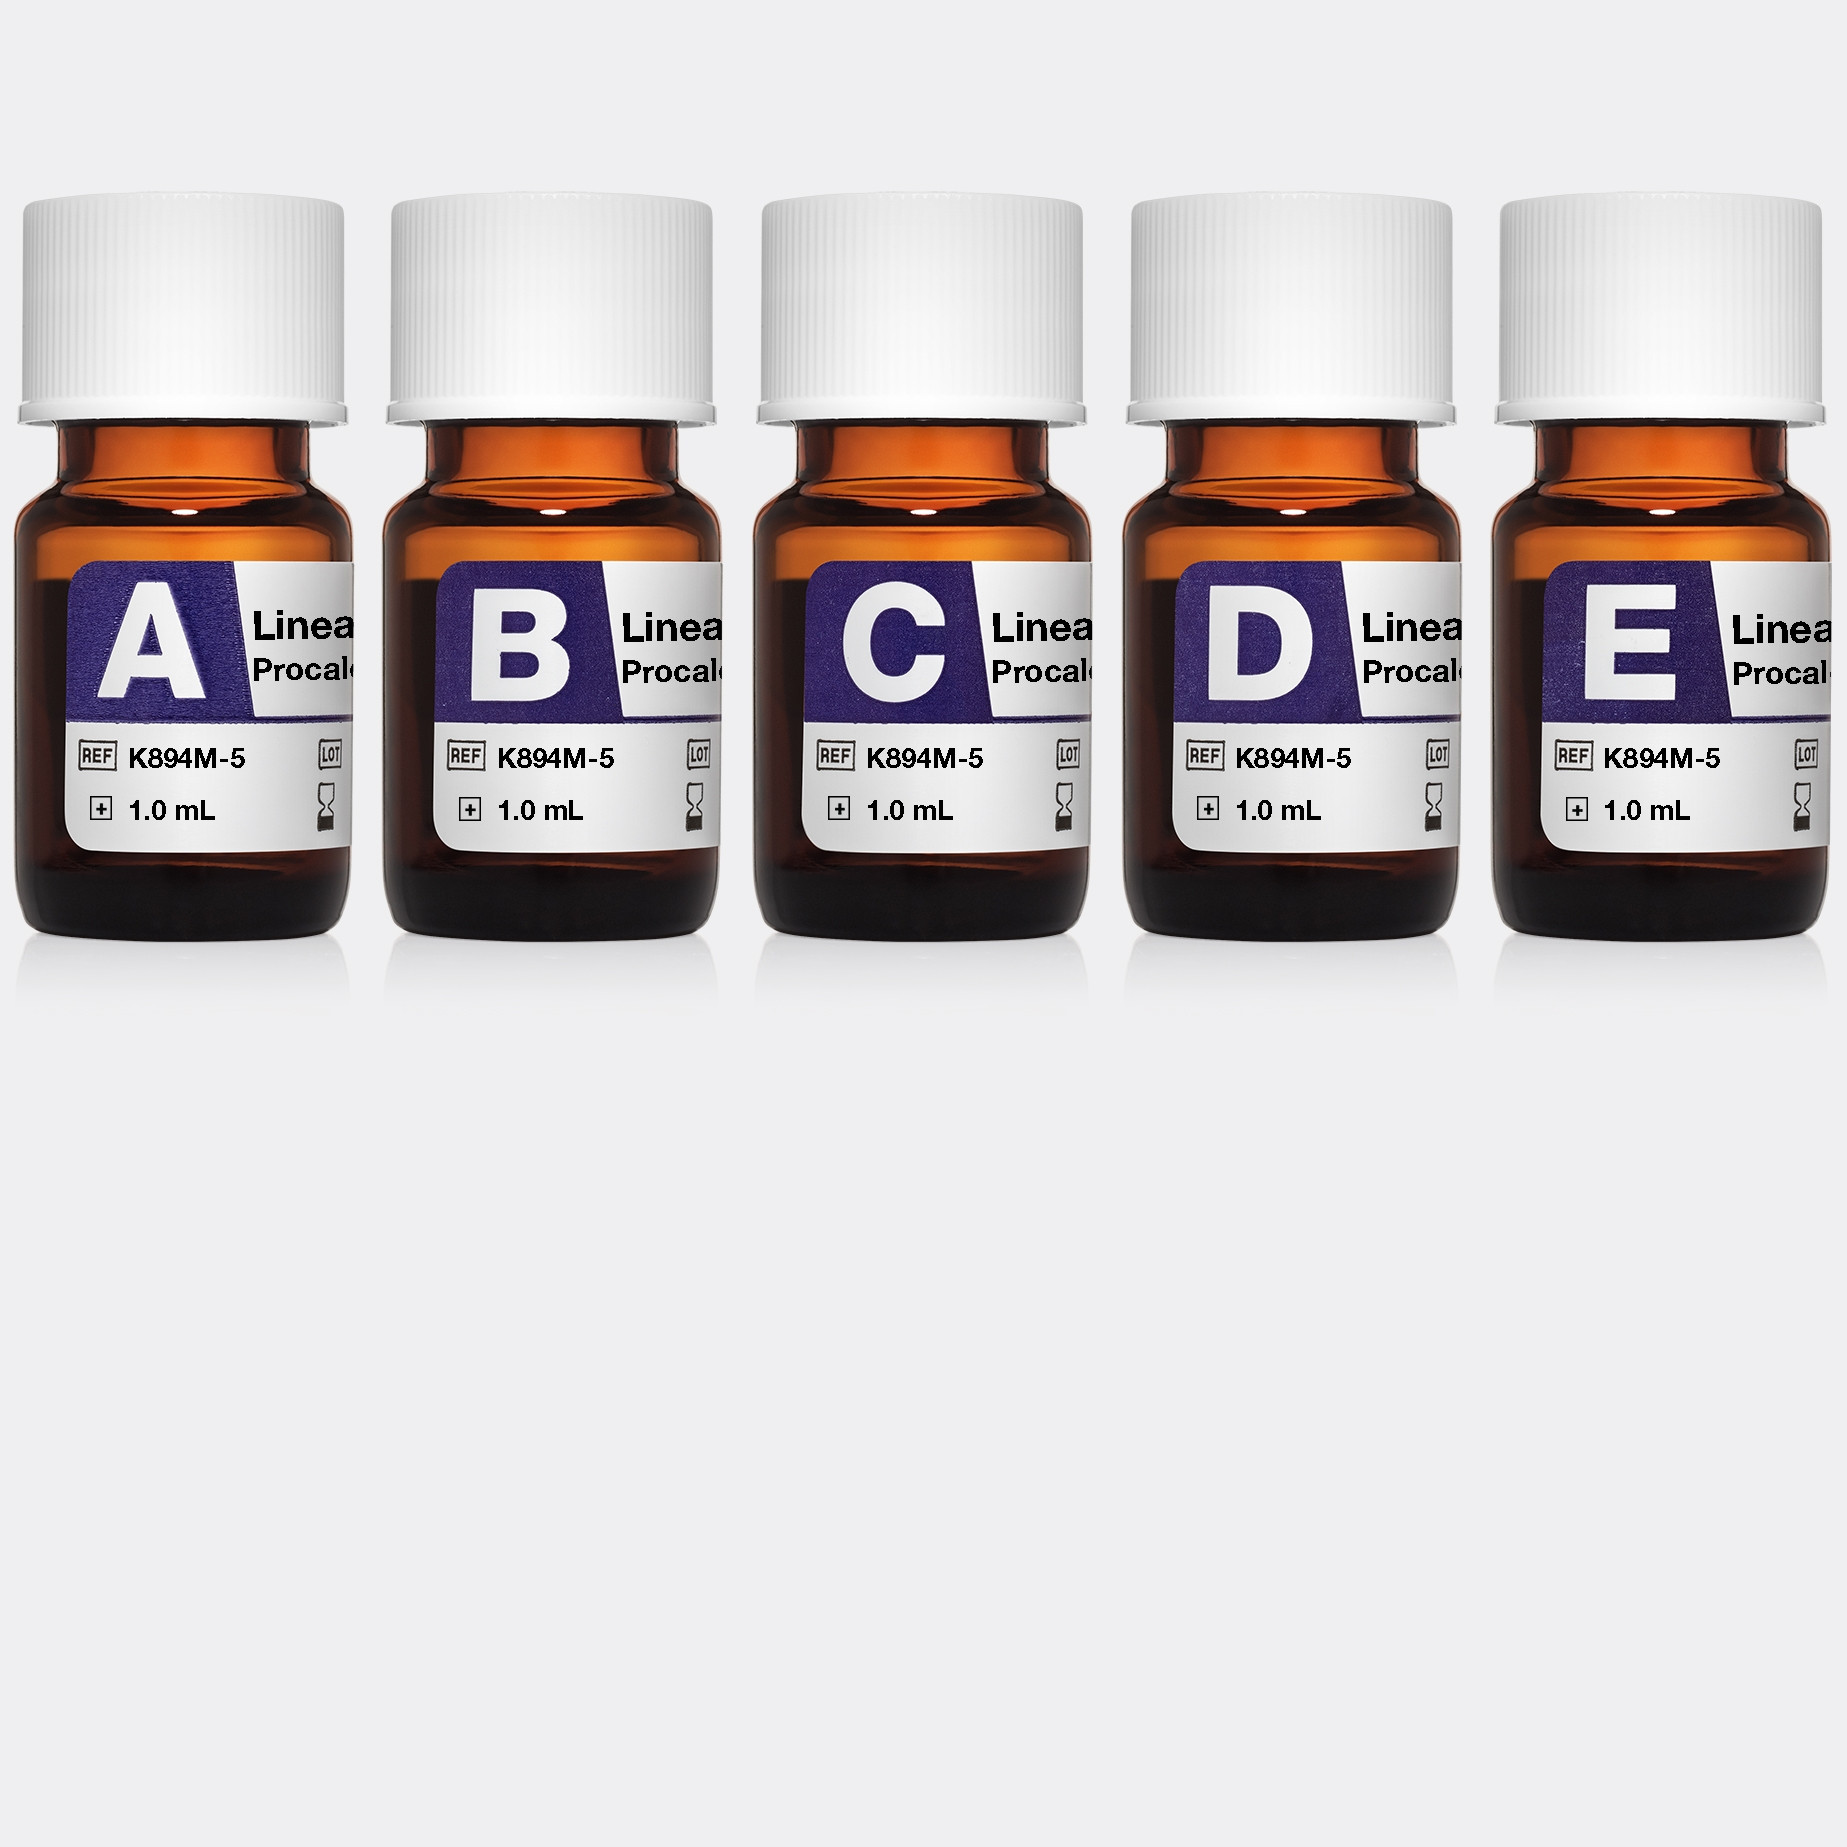 Linearity FD Procalcitonin for Roche Systems